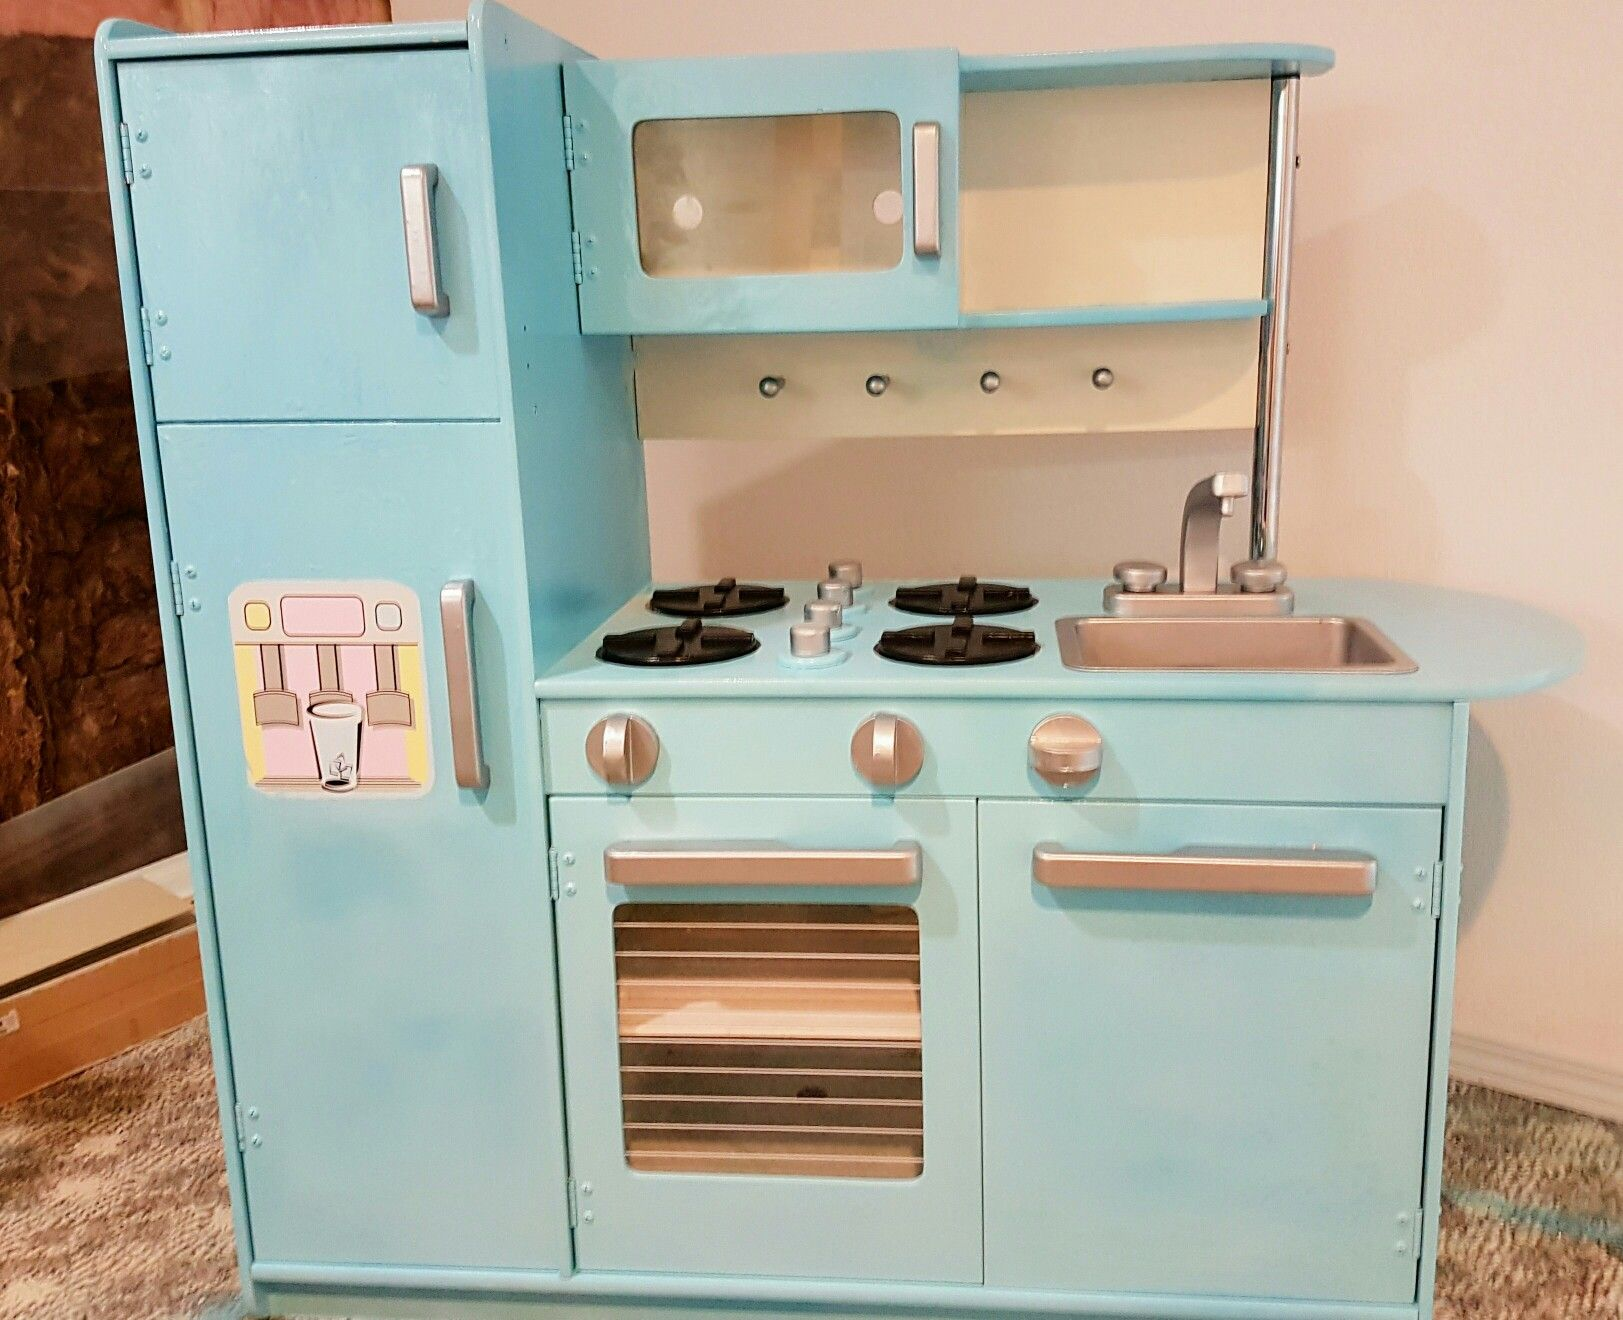 kidkraft kitchen makeover | Projects for Kiddo | Pinterest ...